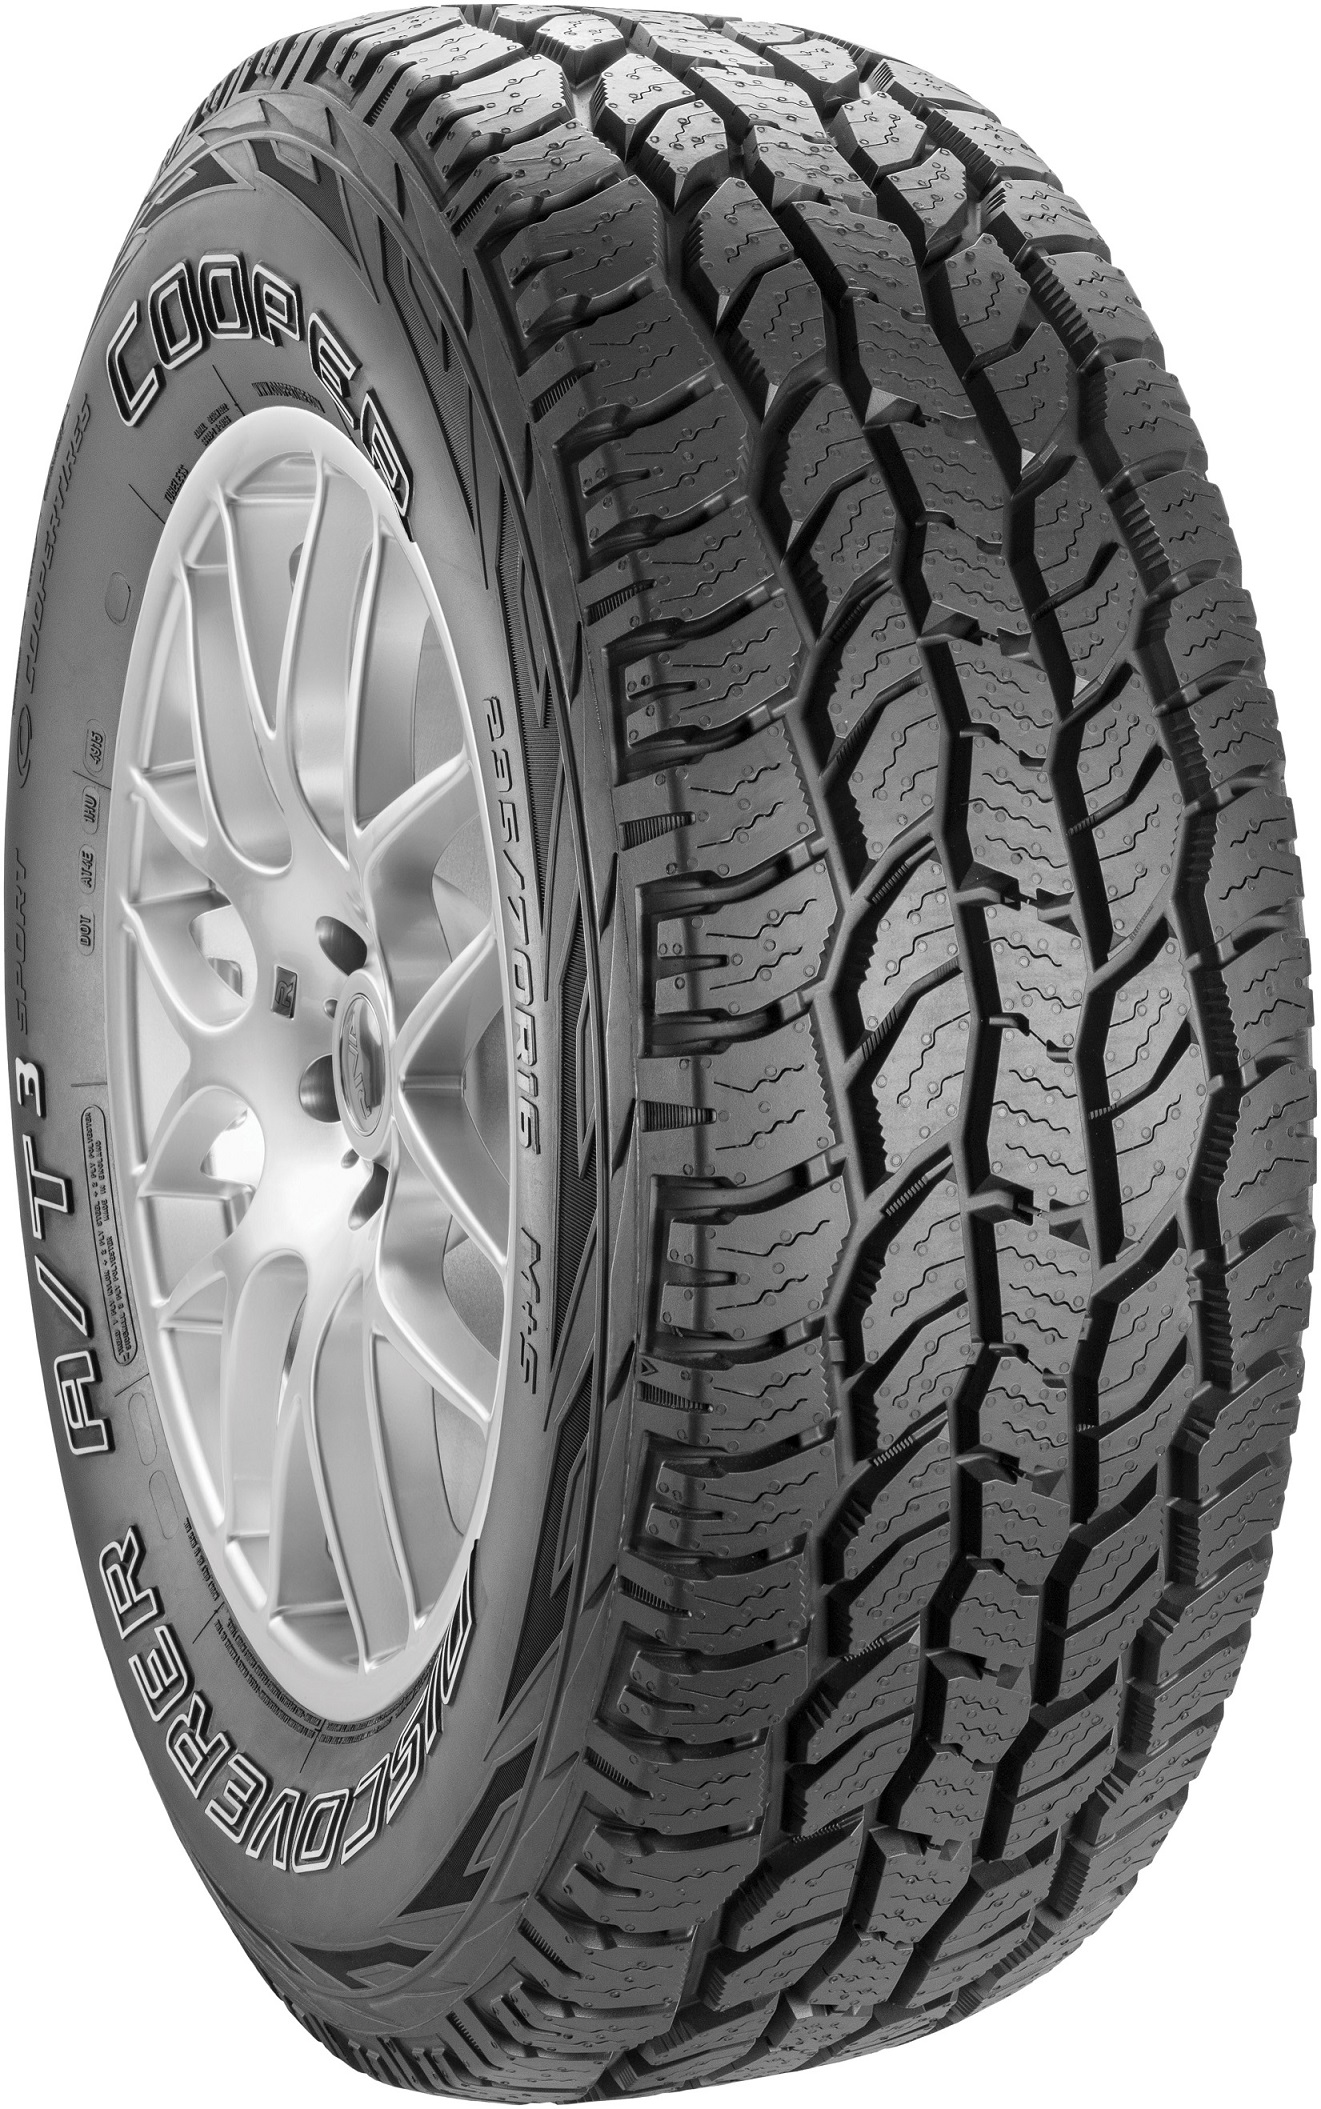 Gomme 4x4 Suv Cooper Tyres 245/70 R16 107T DISC.A/T3 SPORT Estivo